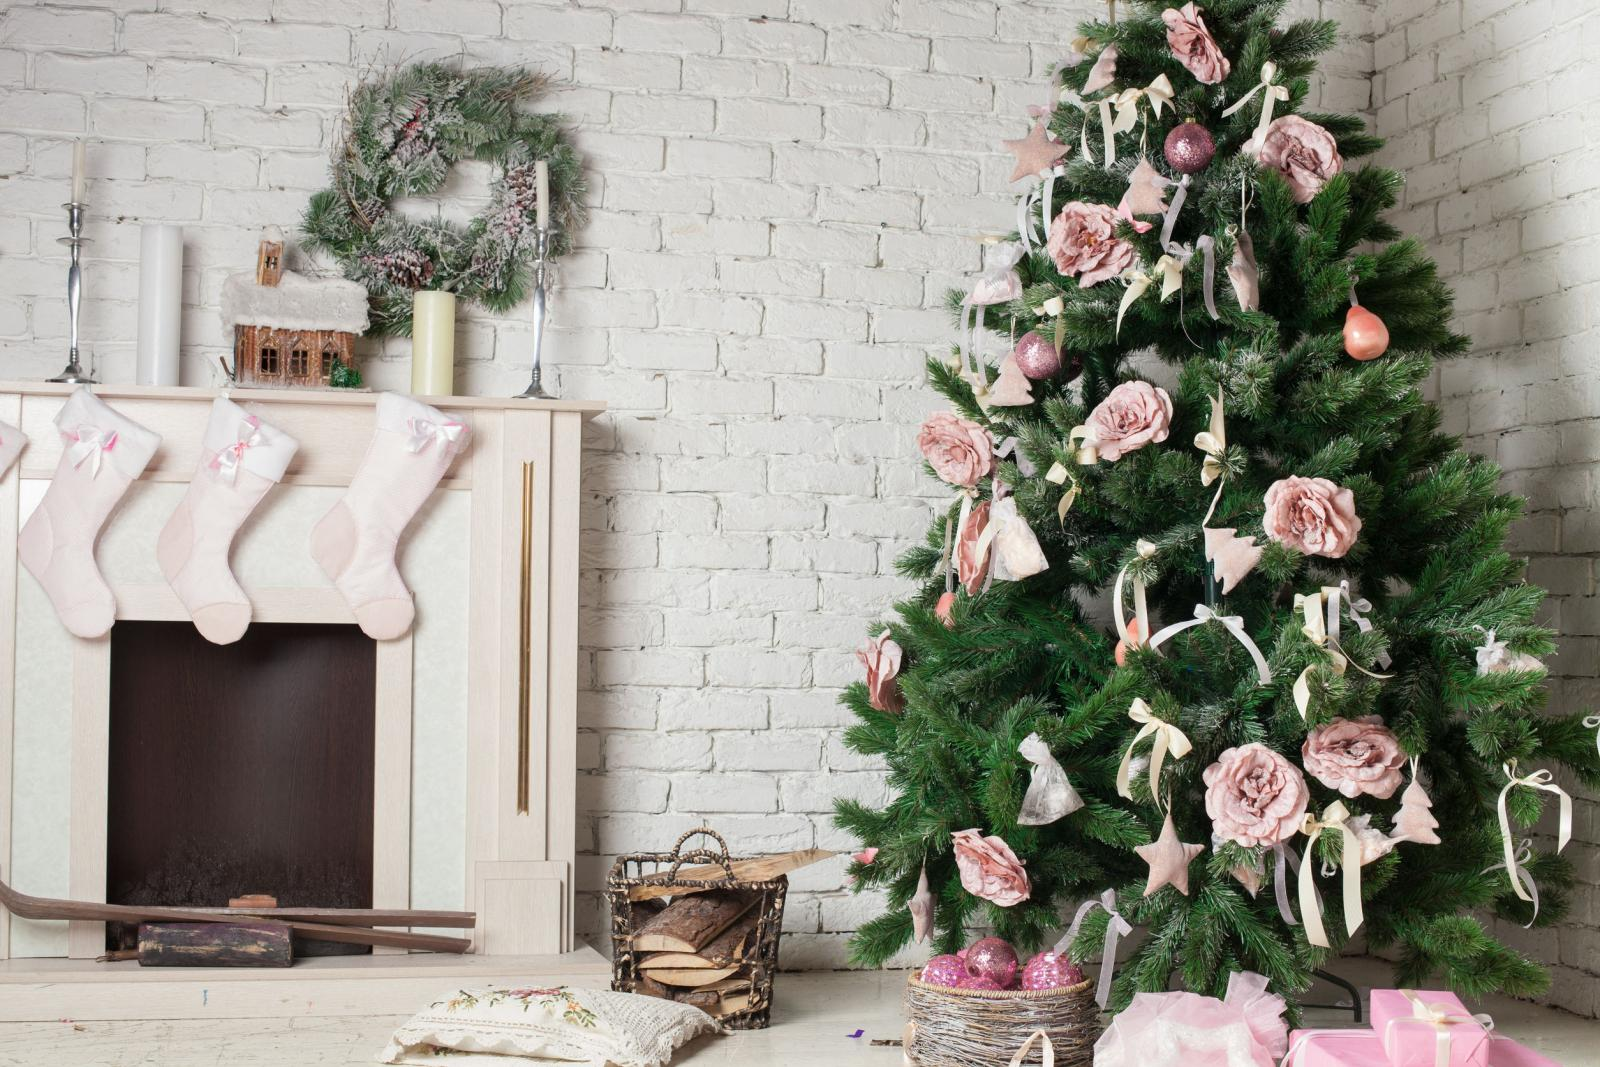 33130926 - image of chimney and decorated xmas tree with gift